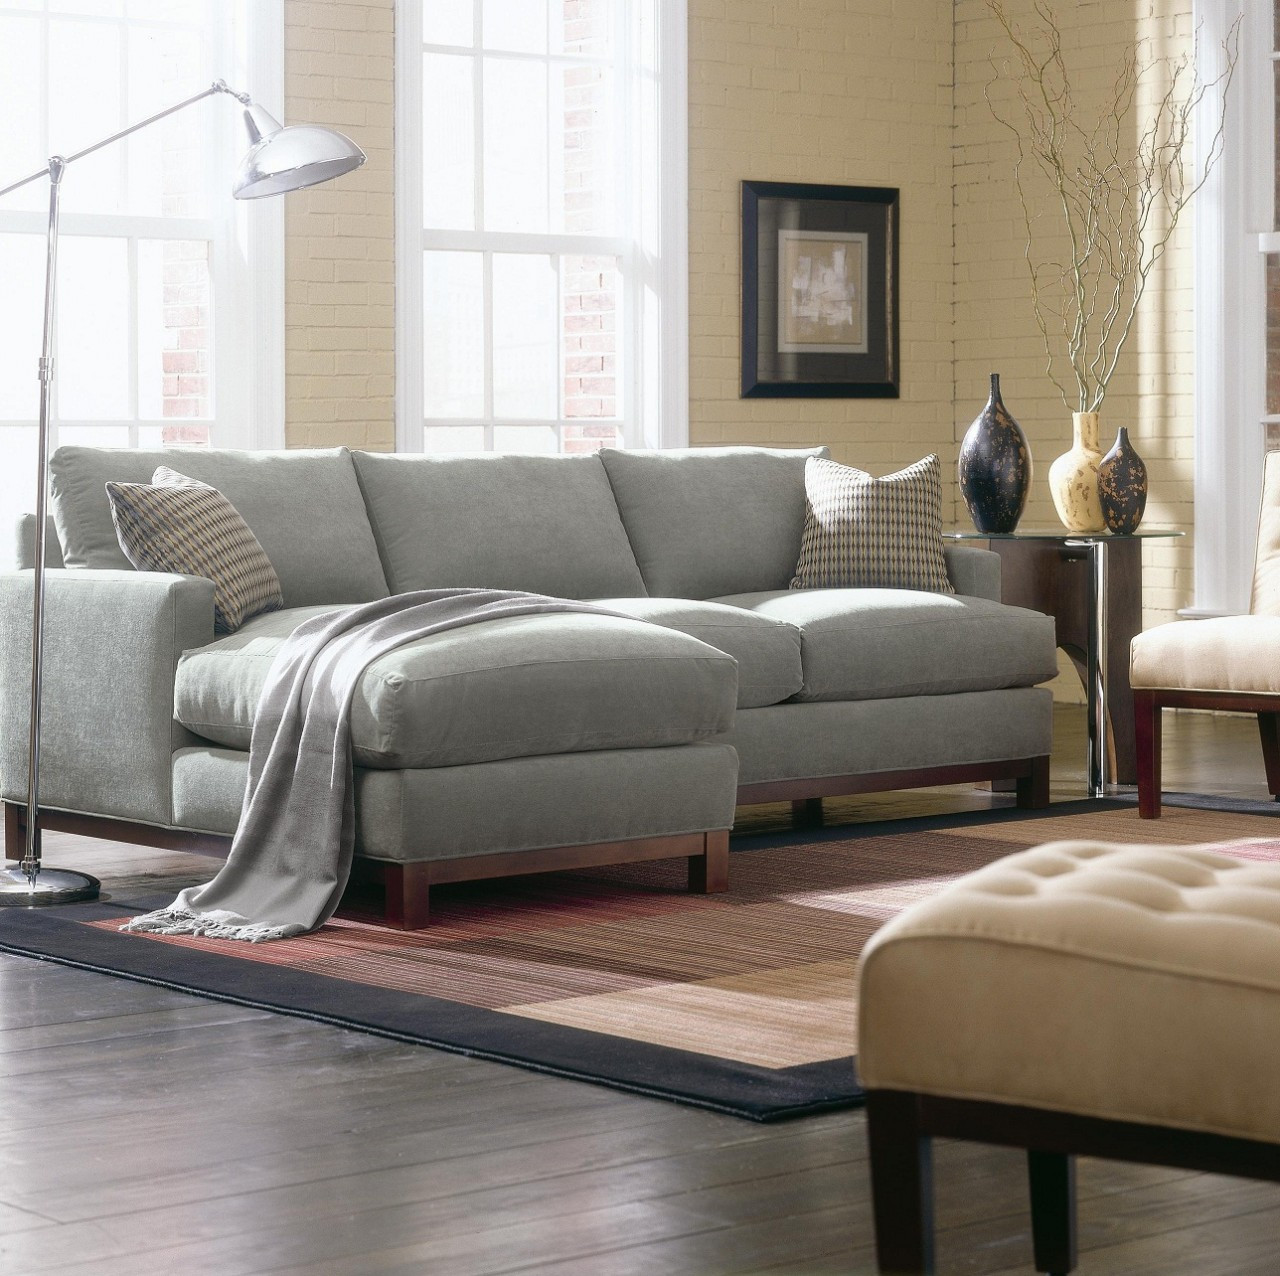 Attrayant Sullivan Mini Mod Sectional Sofa